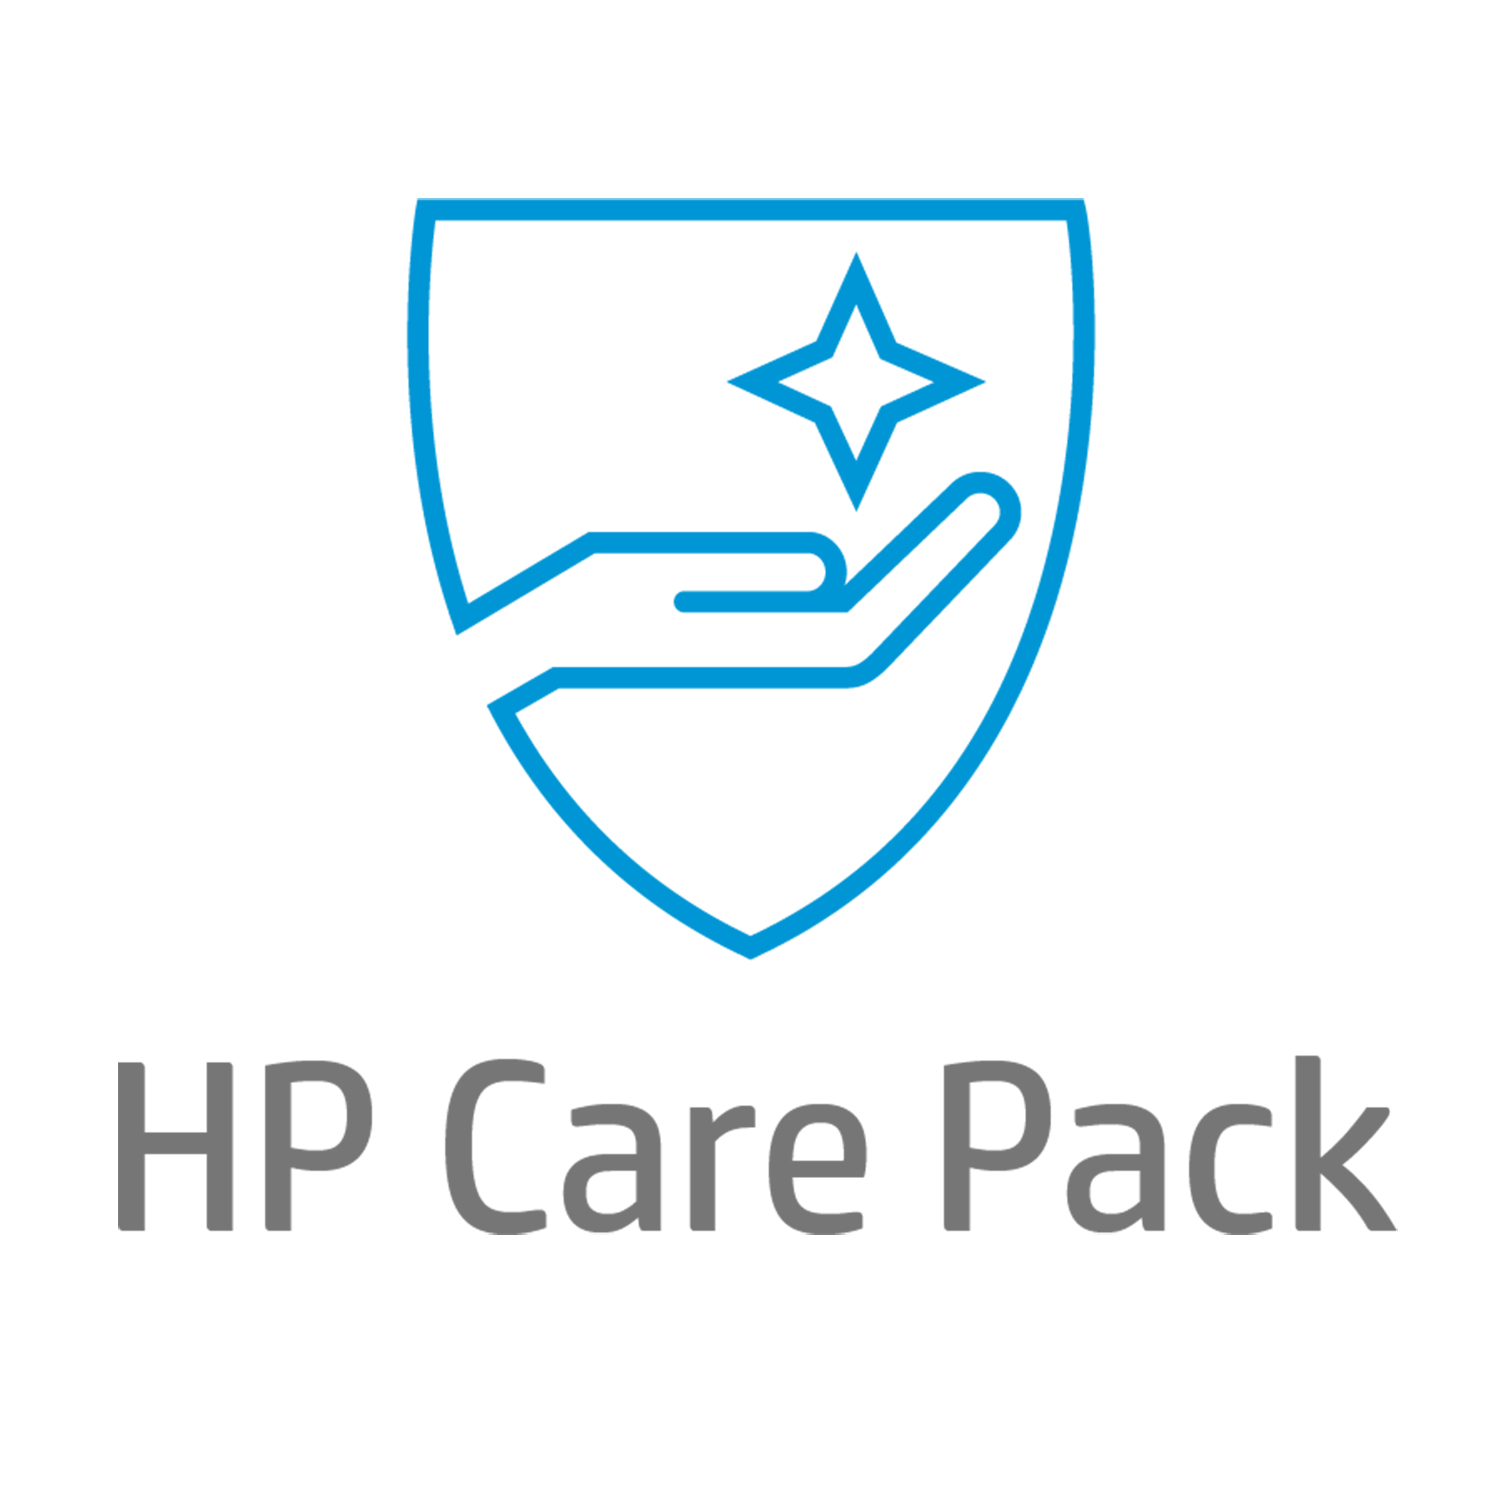 HP 4 year Next Business Day Onsite Hardware Support w/Travel for Notebooks